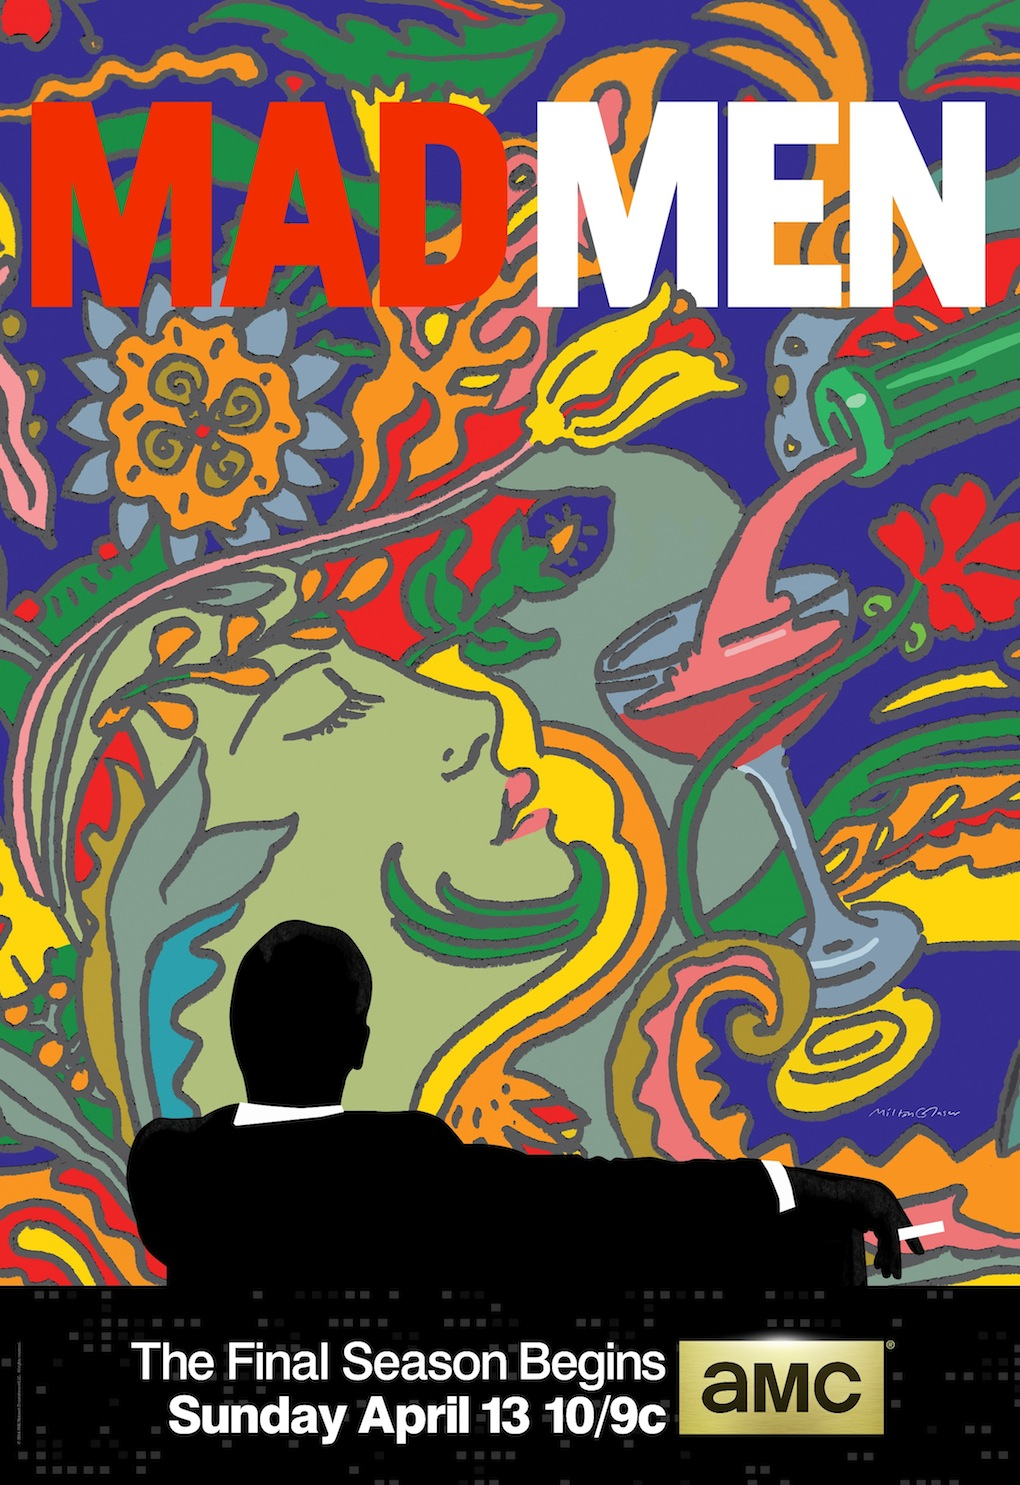 Mad-men-s7-art-milton-glaser-amc